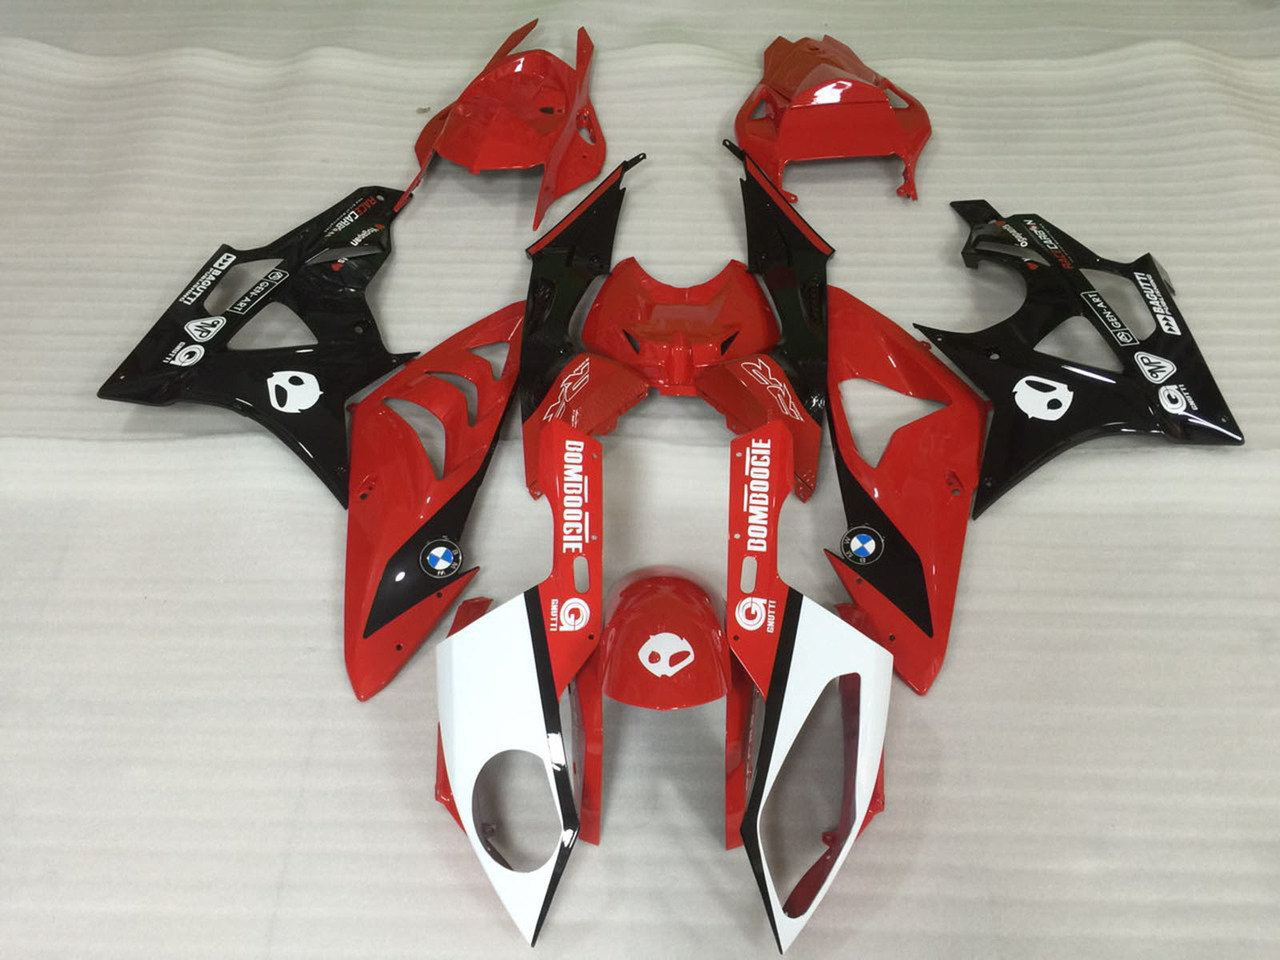 2009 2010 2011 2012 2013 2014 BMW S1000RR red and black fairing set.